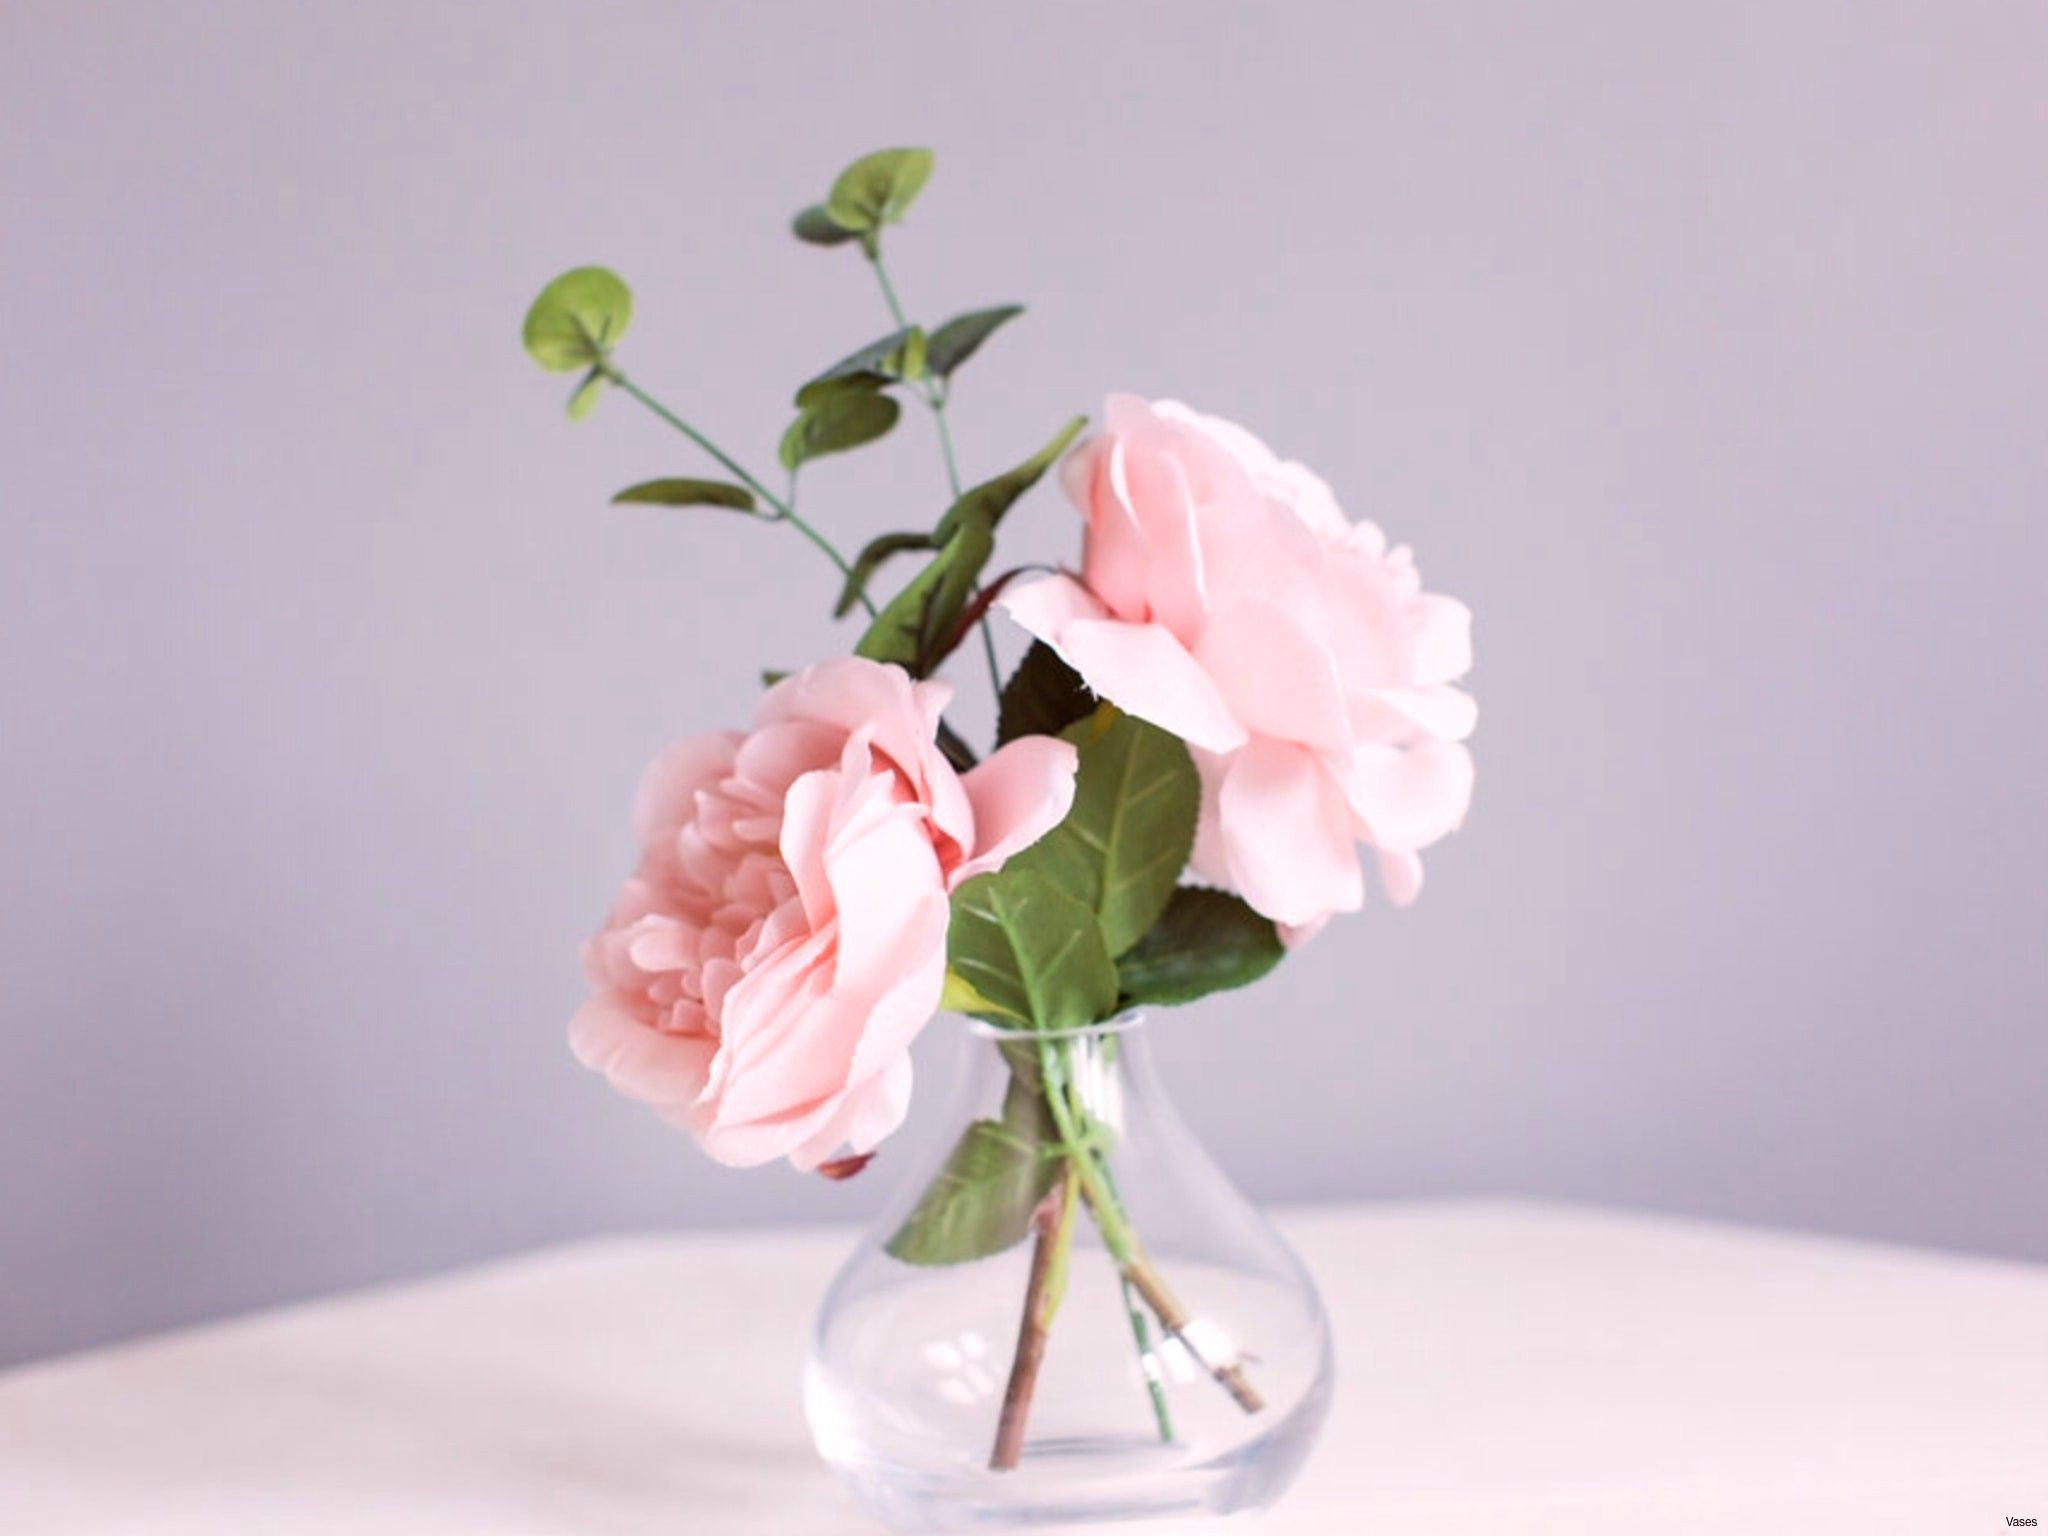 Rose Gold Bud Vase Of Light Pink Vase Awesome Blue Bedroom New Blue Bedroom Ideas New H In Light Pink Vase Awesome Blue Bedroom New Blue Bedroom Ideas New H Vases Bud Vase Flower